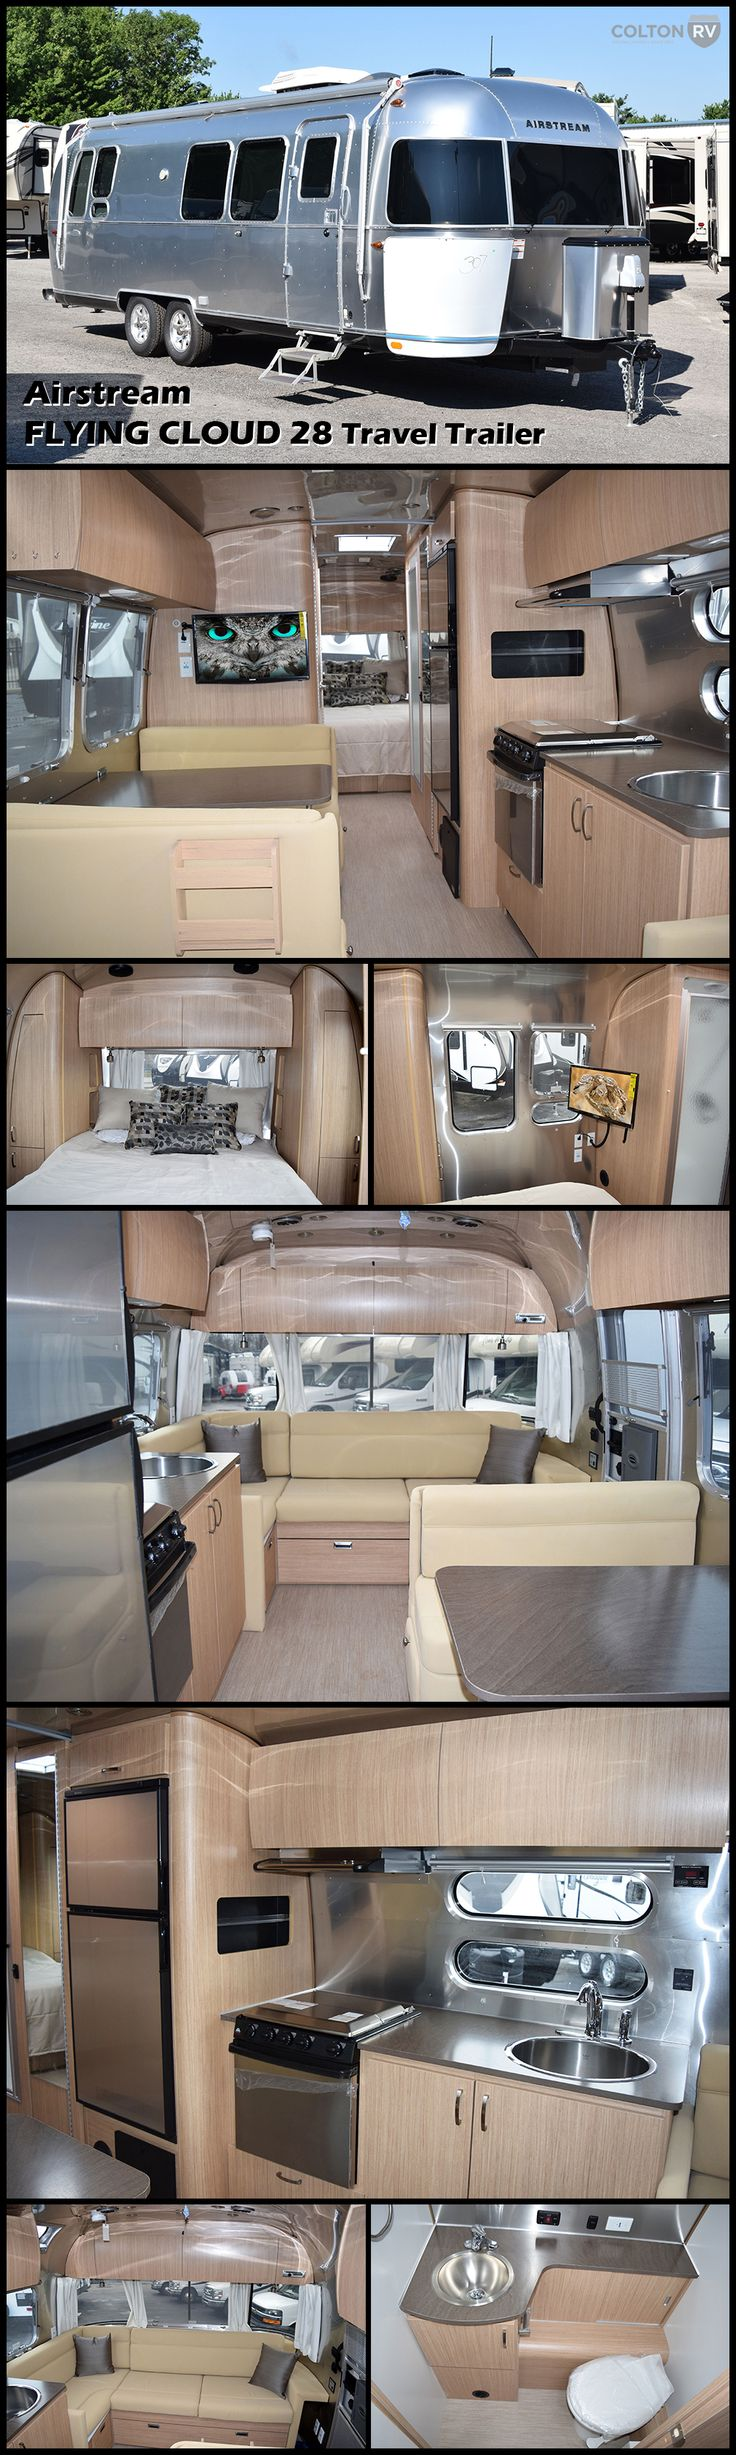 The FLYING CLOUD 28 travel trailer by AIRSTREAM is a perfect fit for families, long-term travelers or weekend wanderers. It lasts longer, requires less maintenance, offers better stability and towing and costs less at the fuel pump. You'll have the quality and comfort that is uniquely your style.